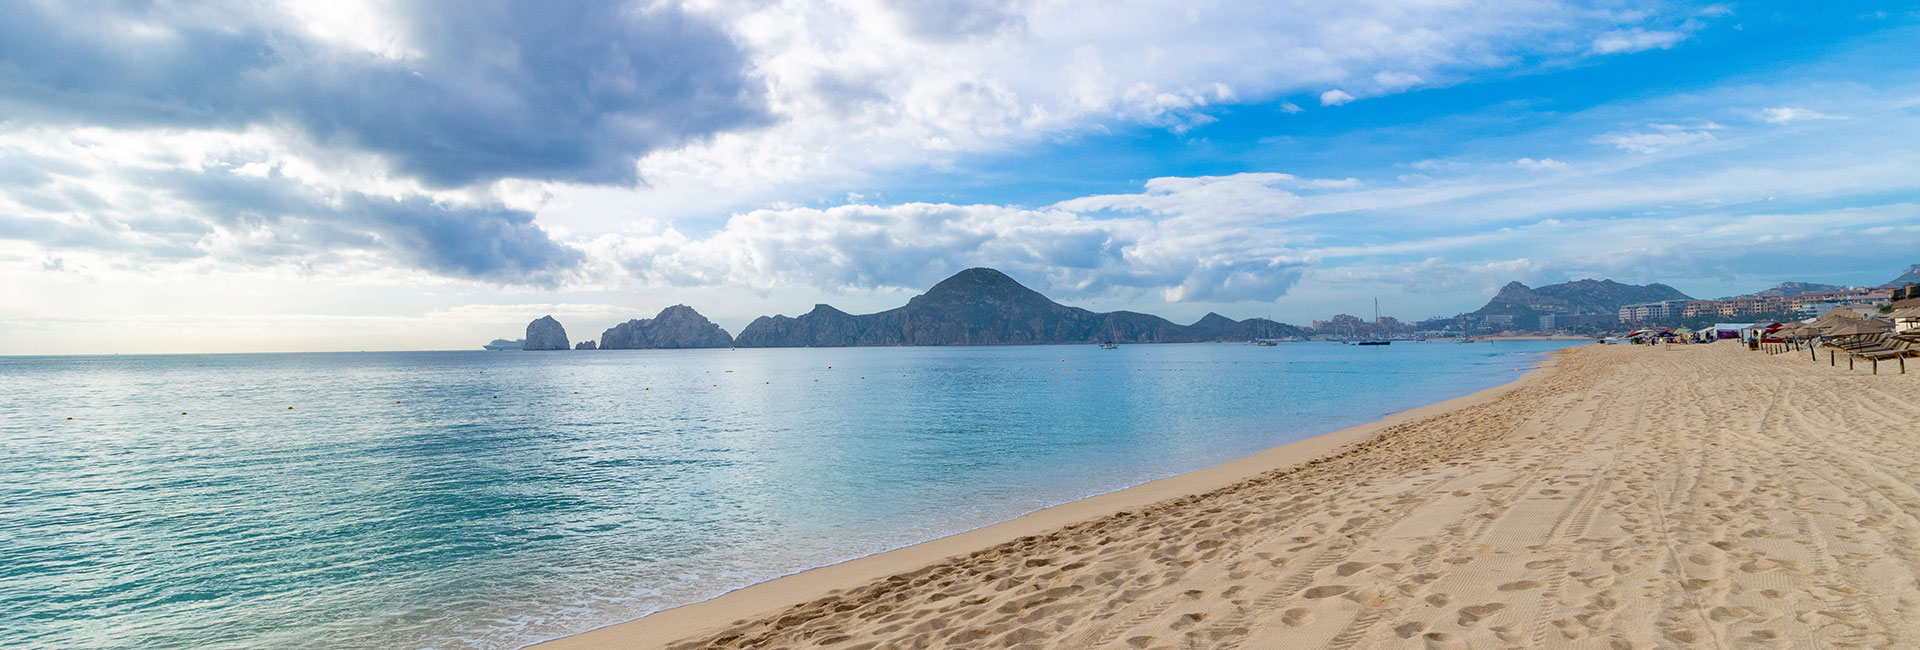 Covid travel restrictions 2021 updates in cabo san lucas mexico